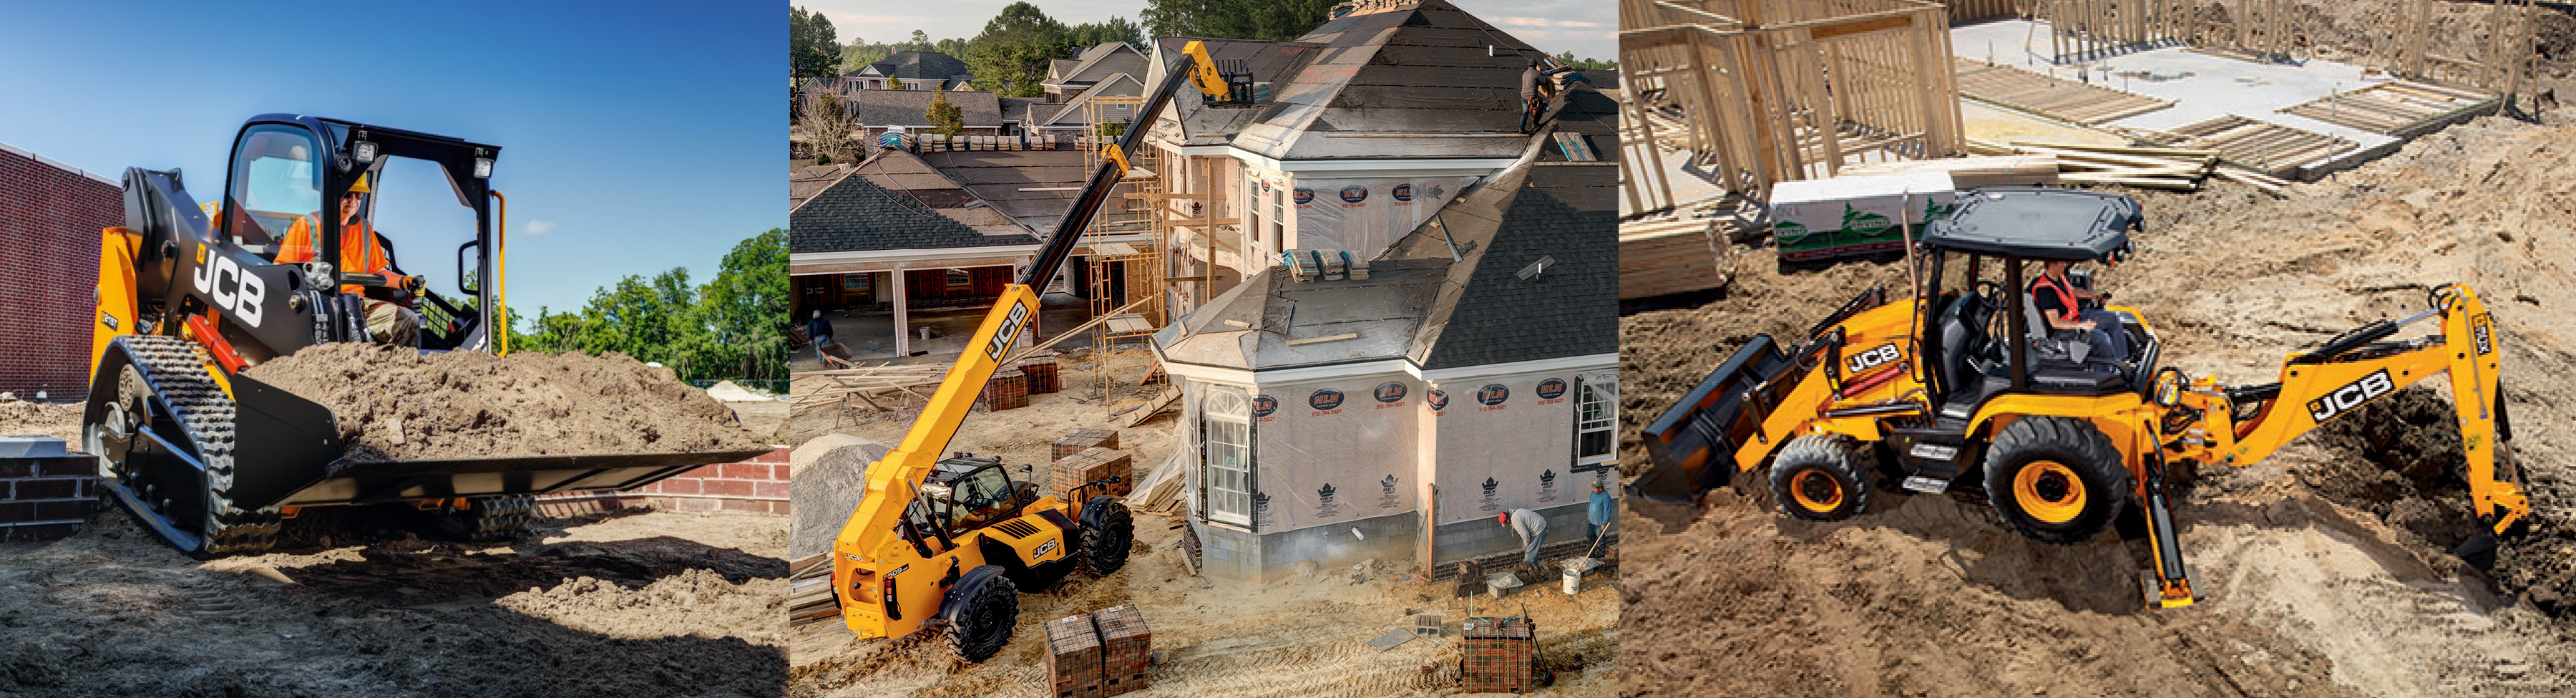 JCB Equipment For Rent In Georgia | Low Country JCB